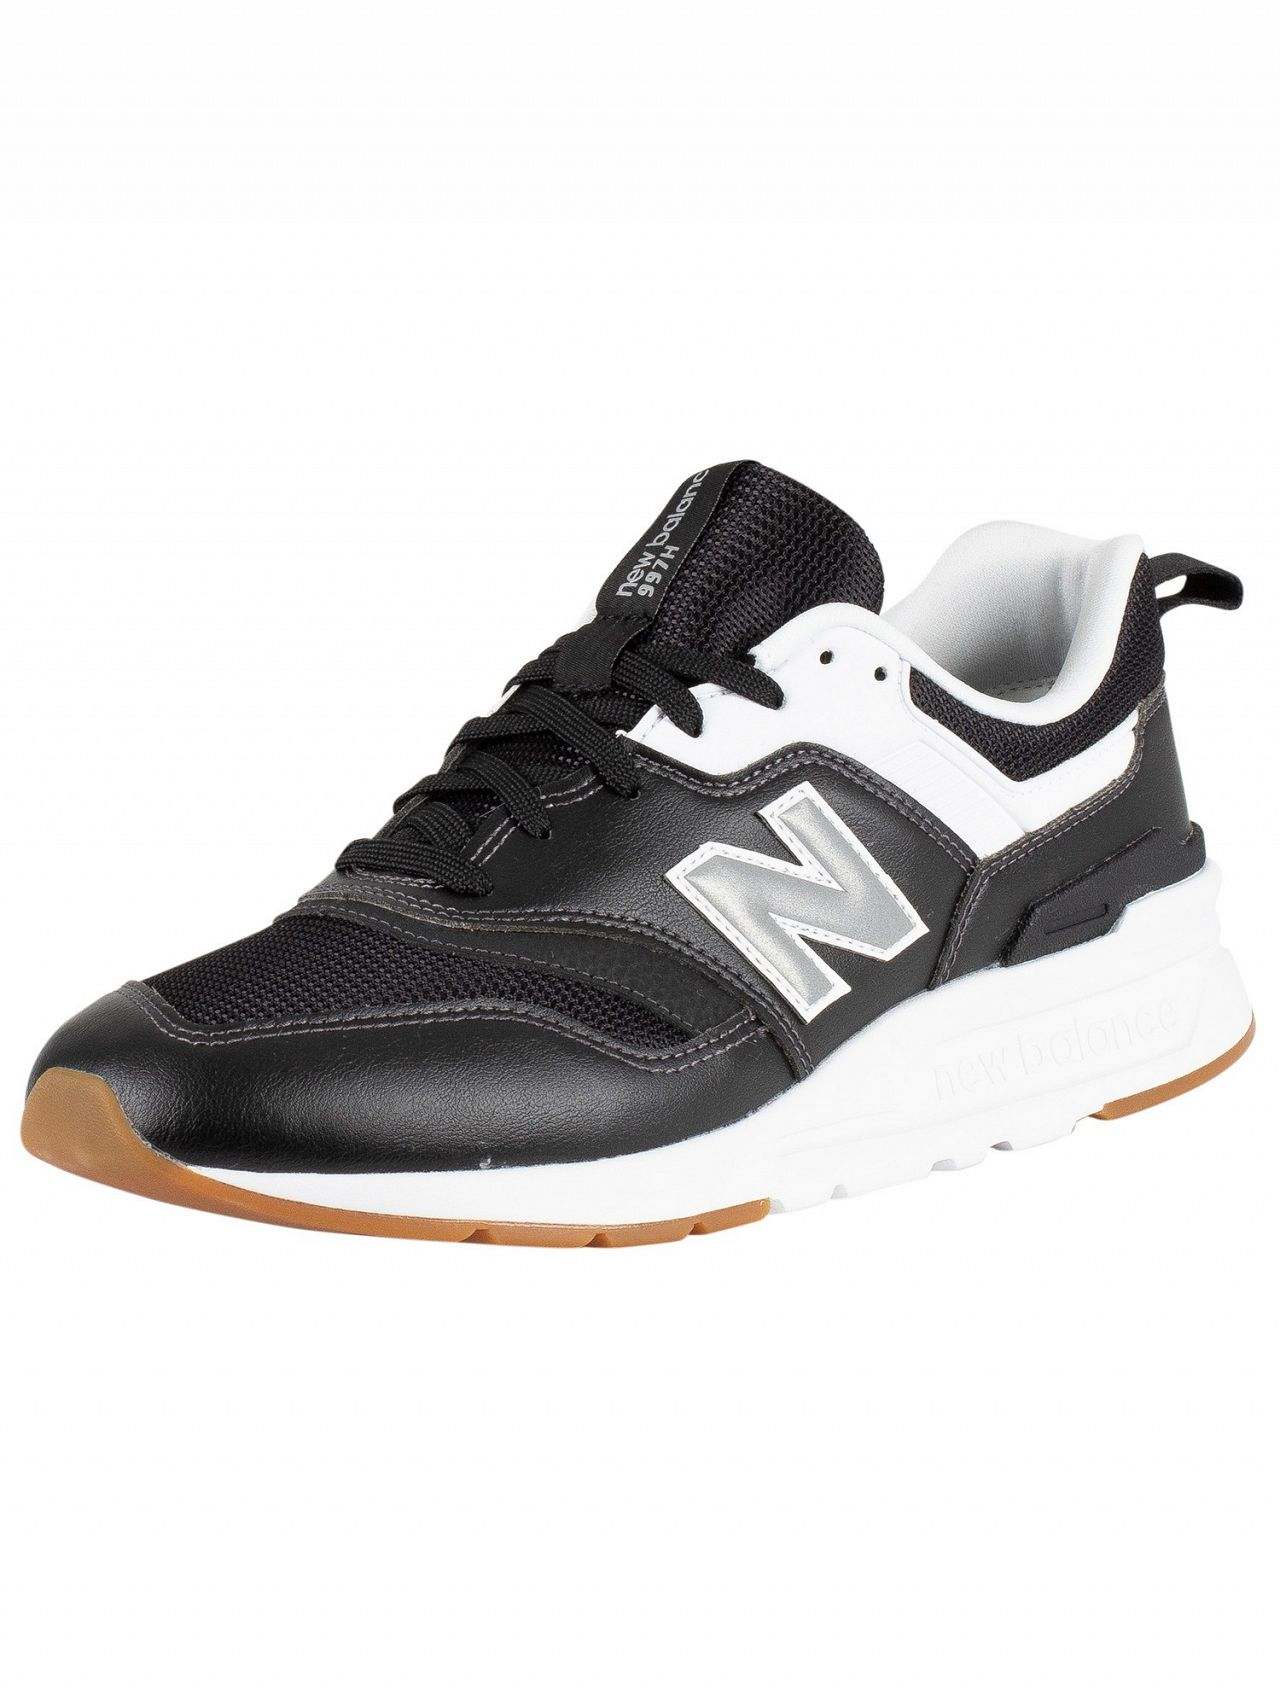 a66524dd69 New Balance Black/White 997 Leather Trainers